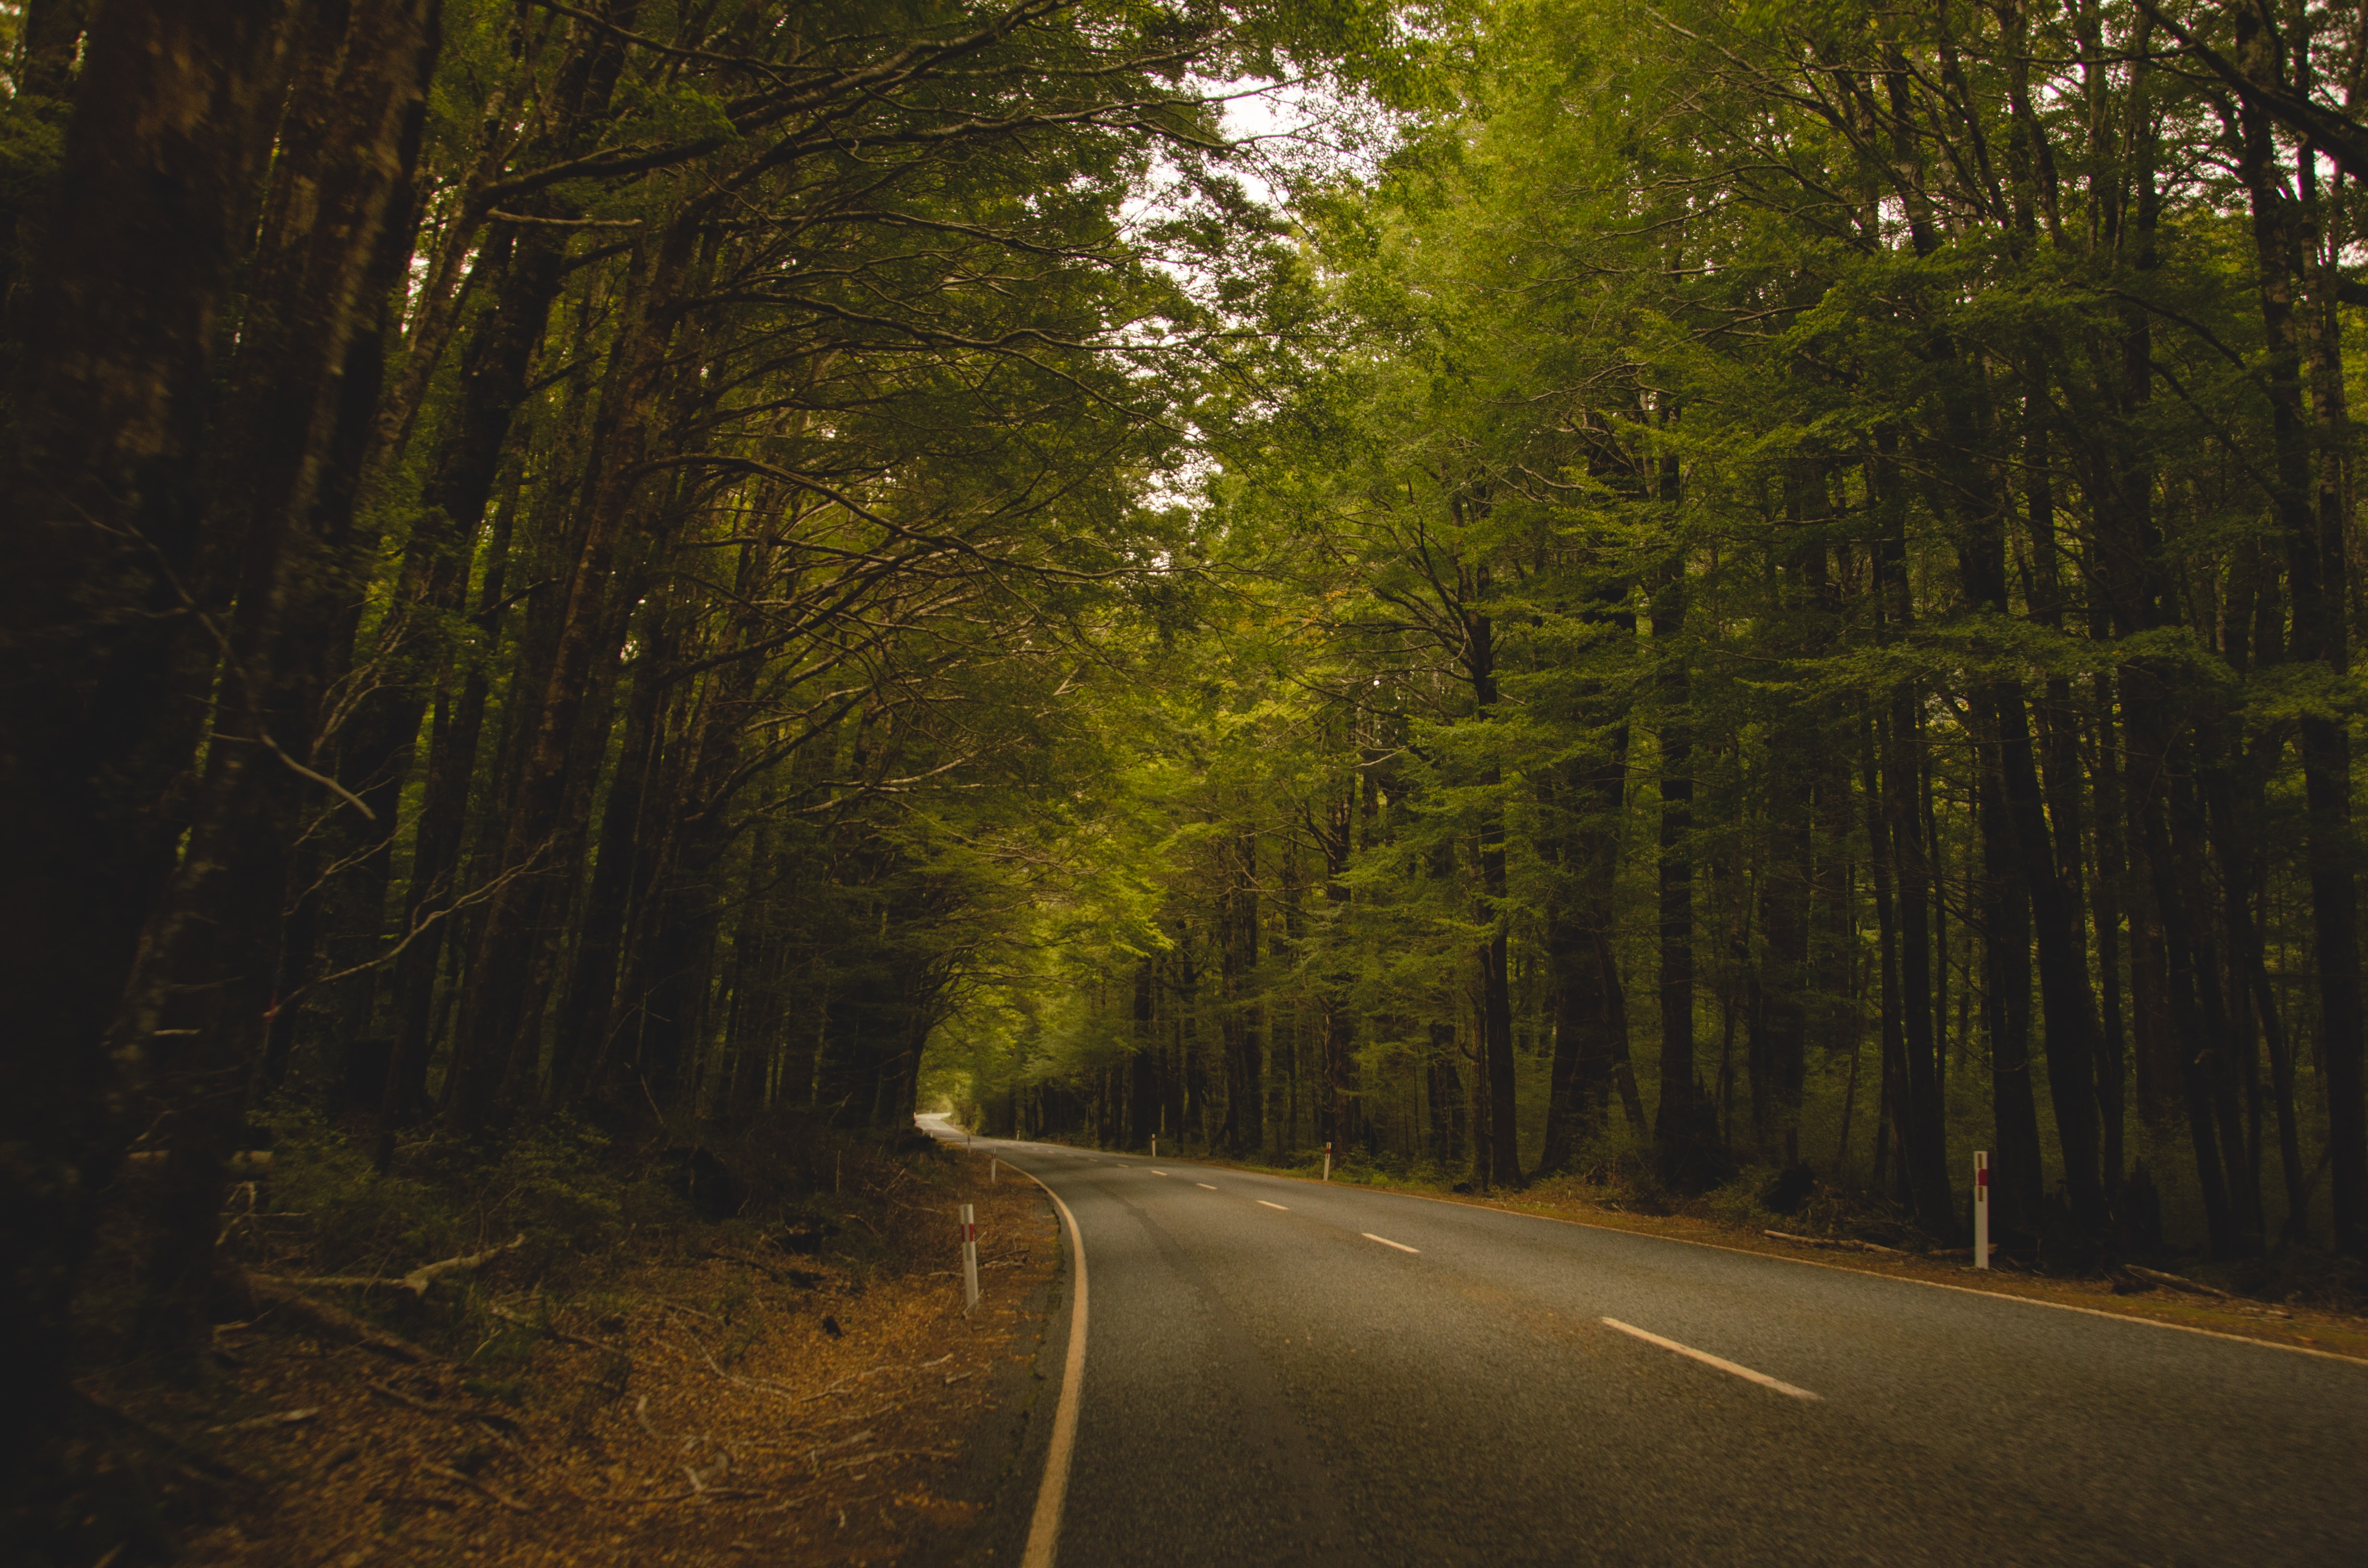 Road through the woods lines with tall green trees